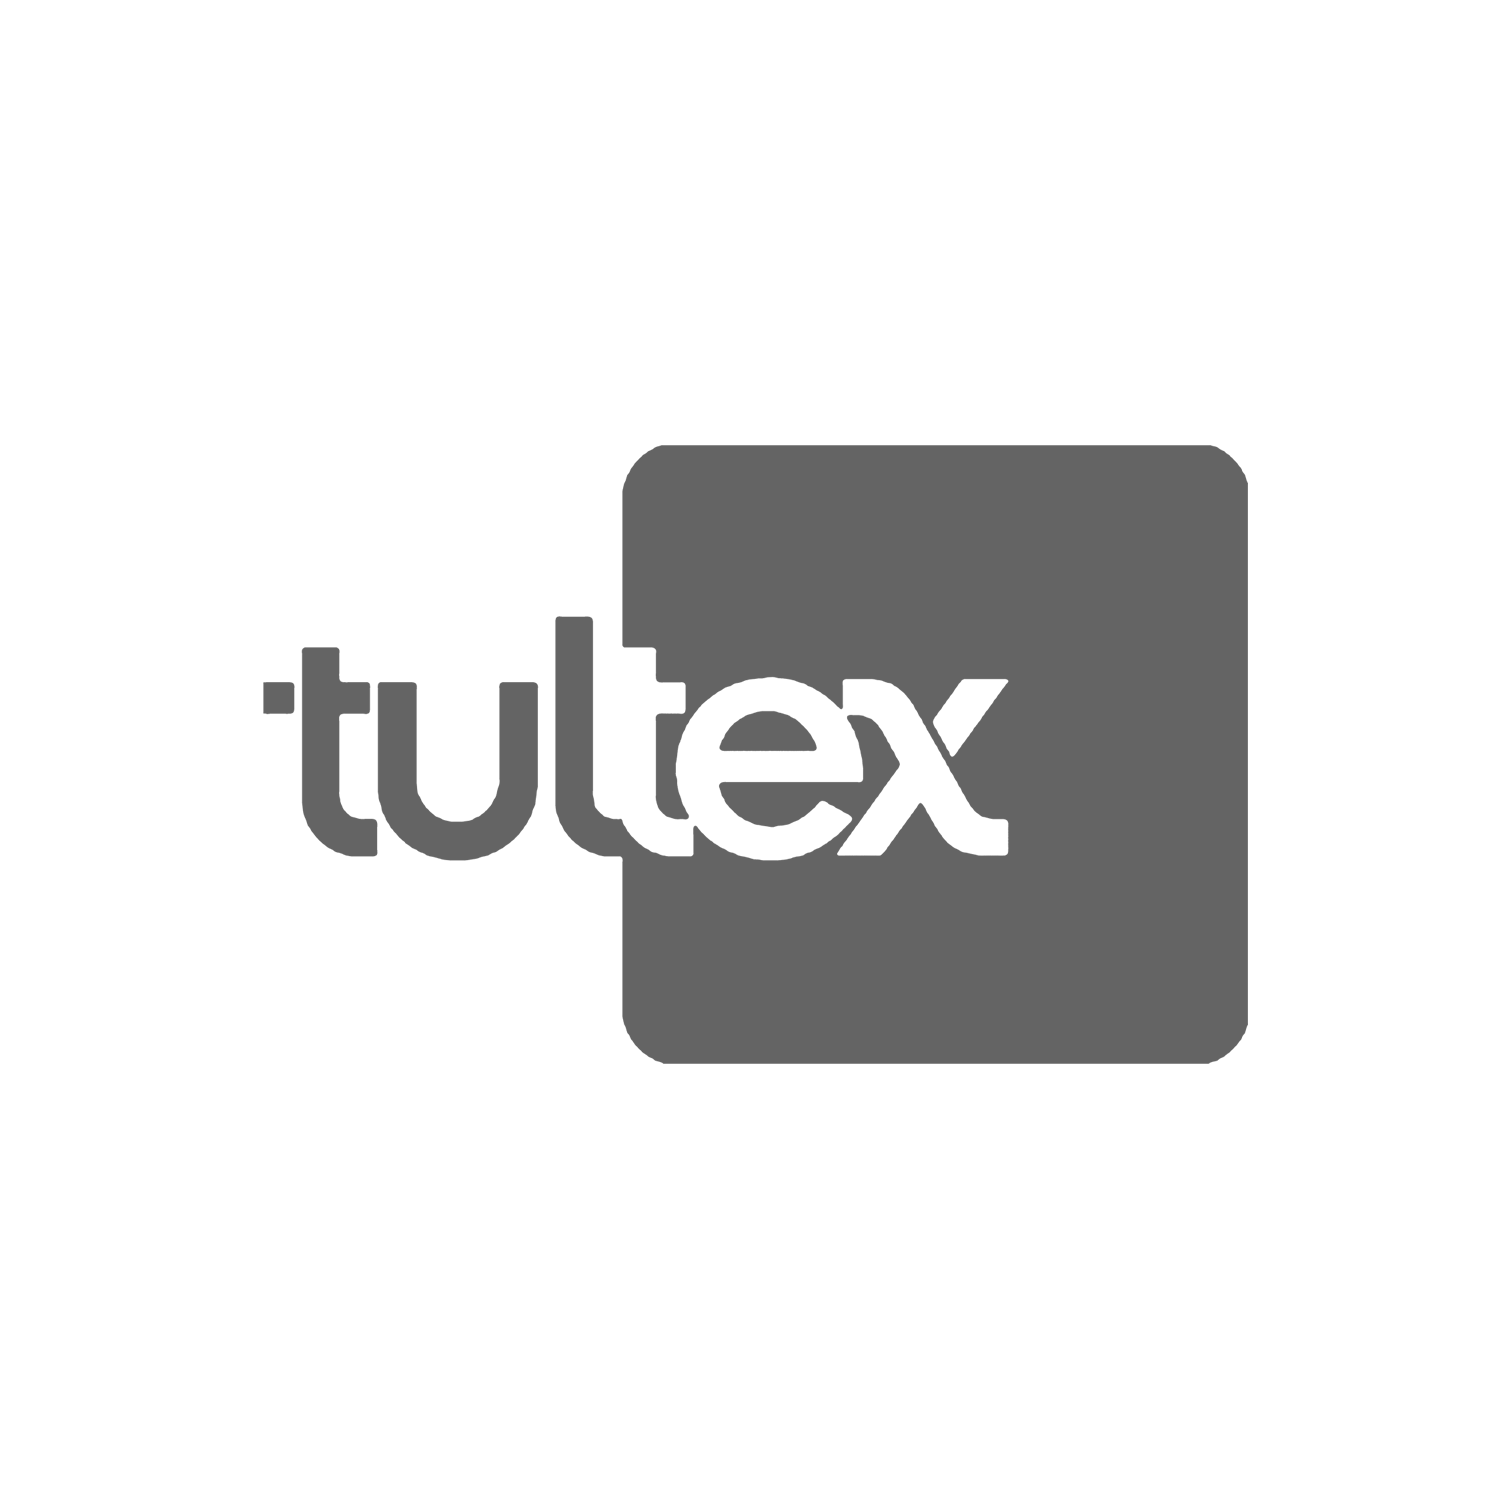 Tultex.png